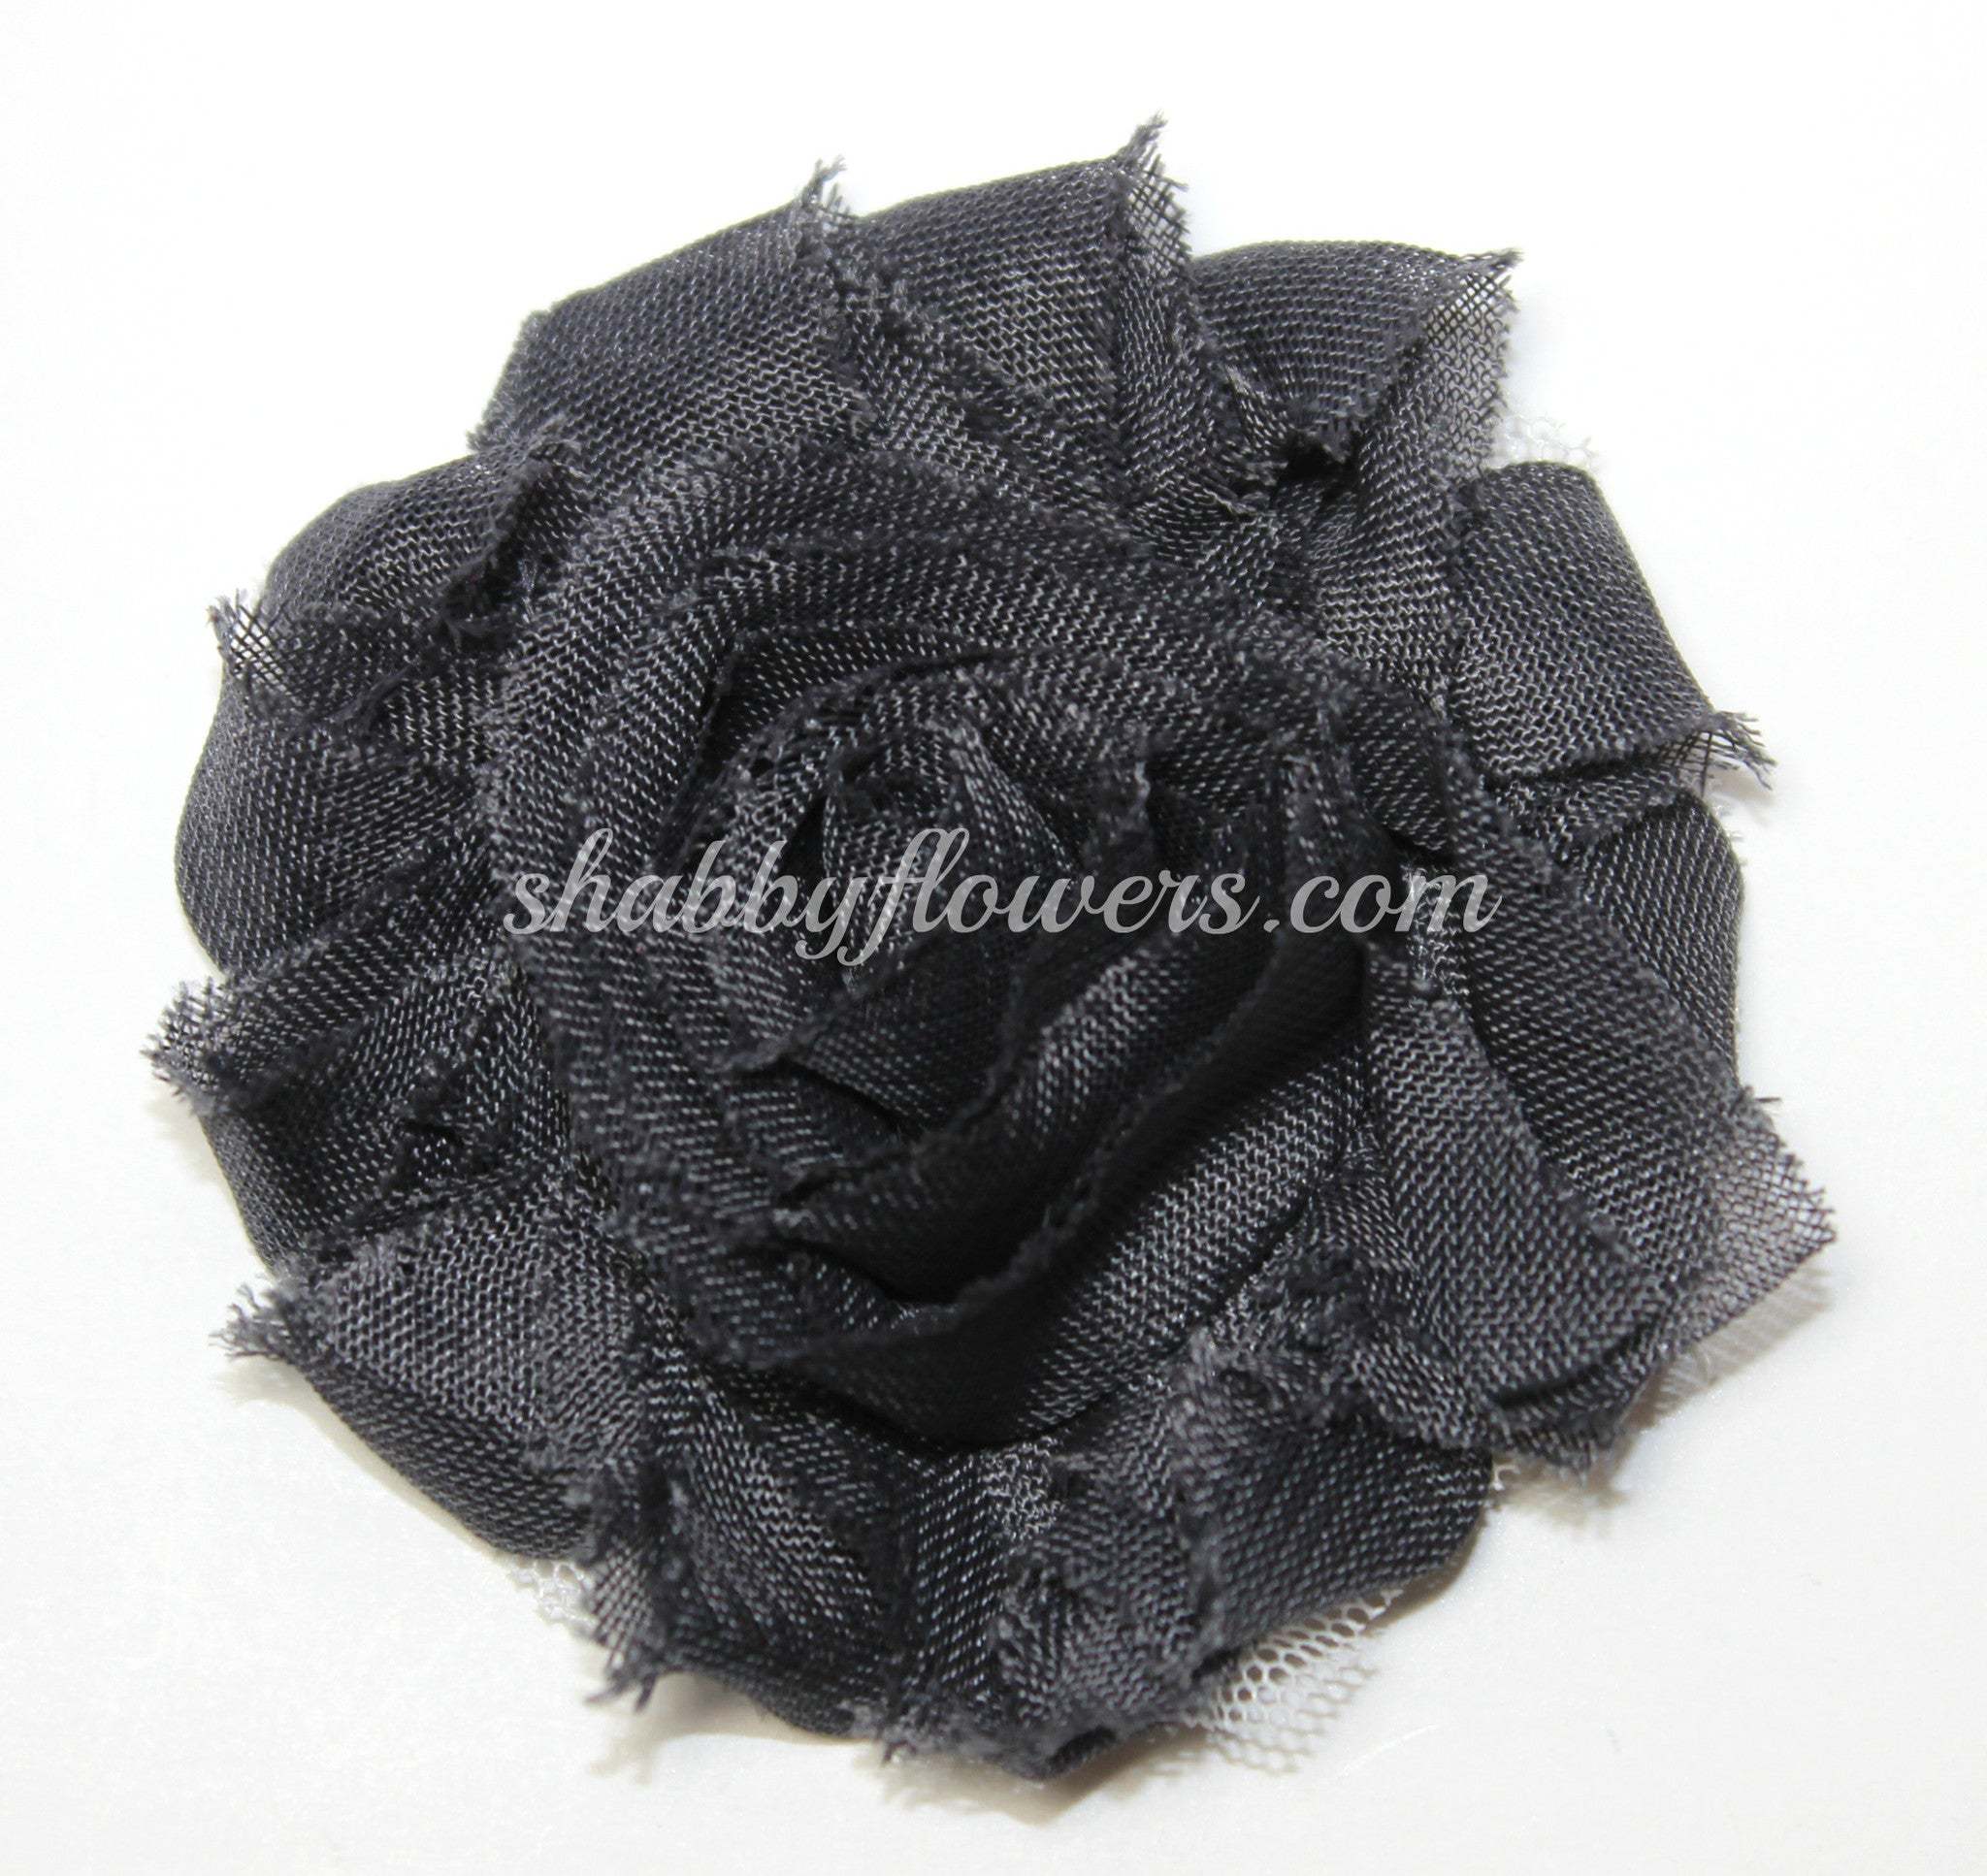 Shabby Chiffon Flower - Charcoal - shabbyflowers.com